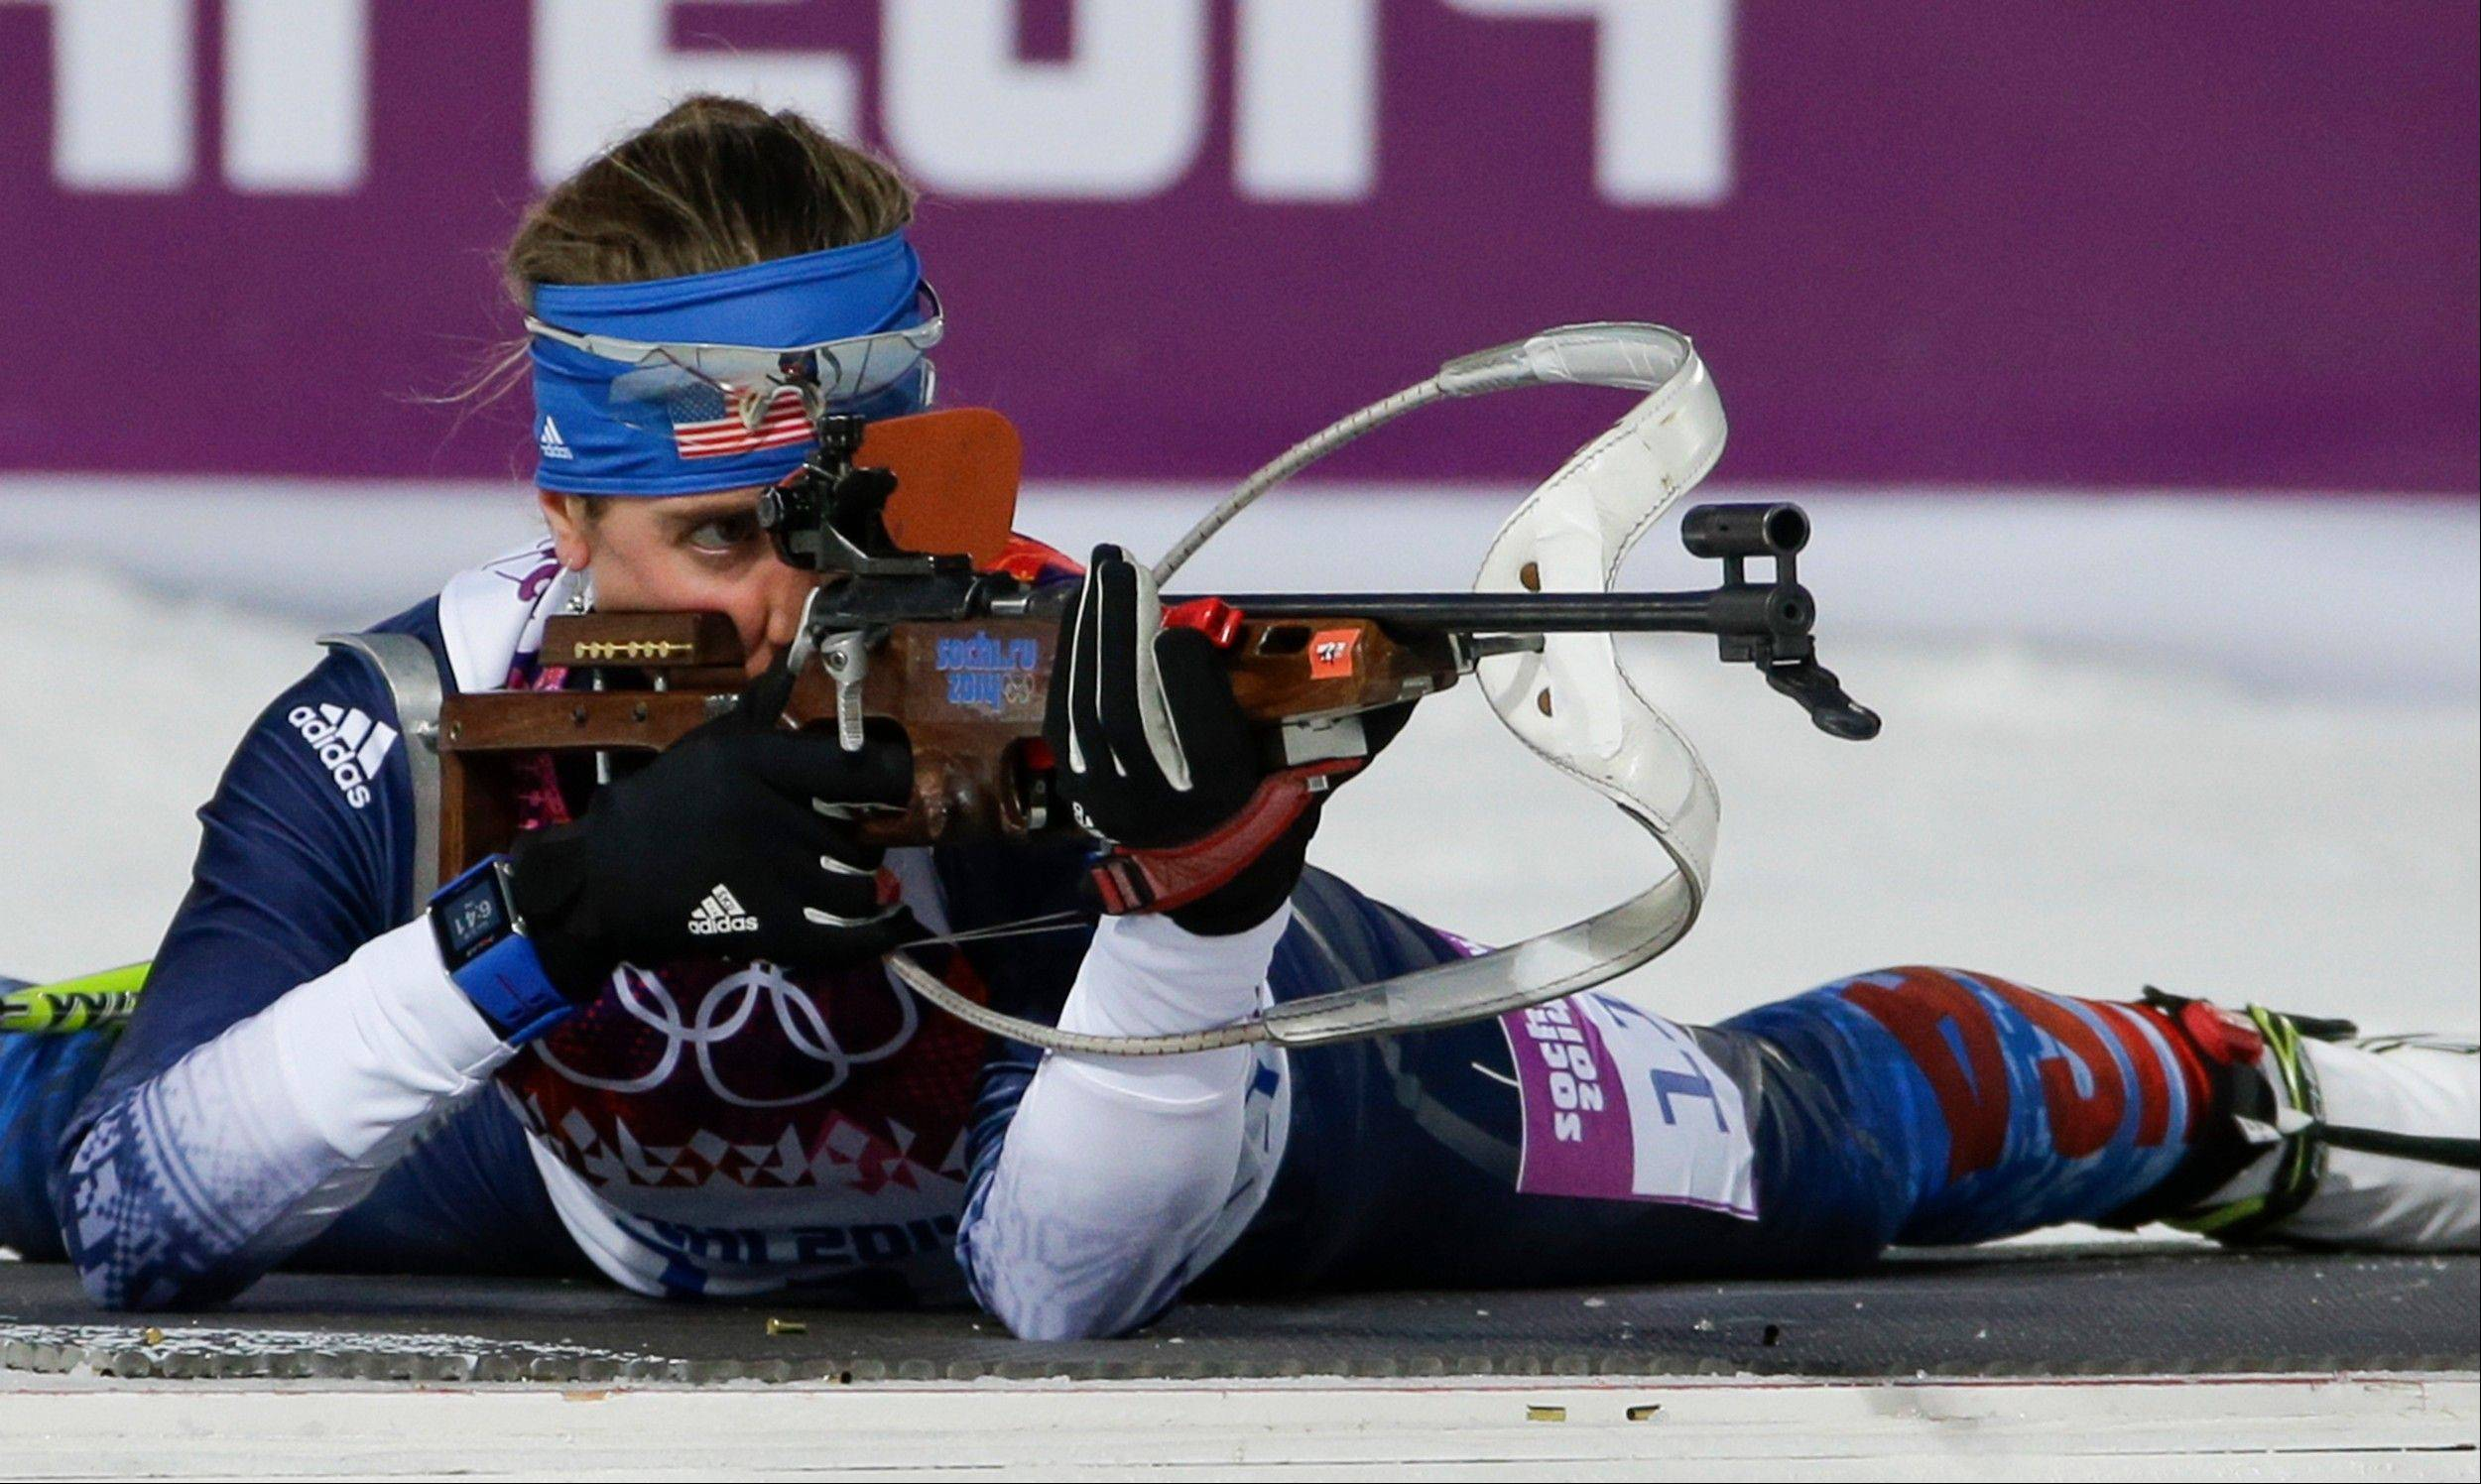 United States' Susan Dunklee shoots during the women's biathlon 7.5k sprint, at the 2014 Winter Olympics, Sunday, Feb. 9, 2014, in Krasnaya Polyana, Russia.